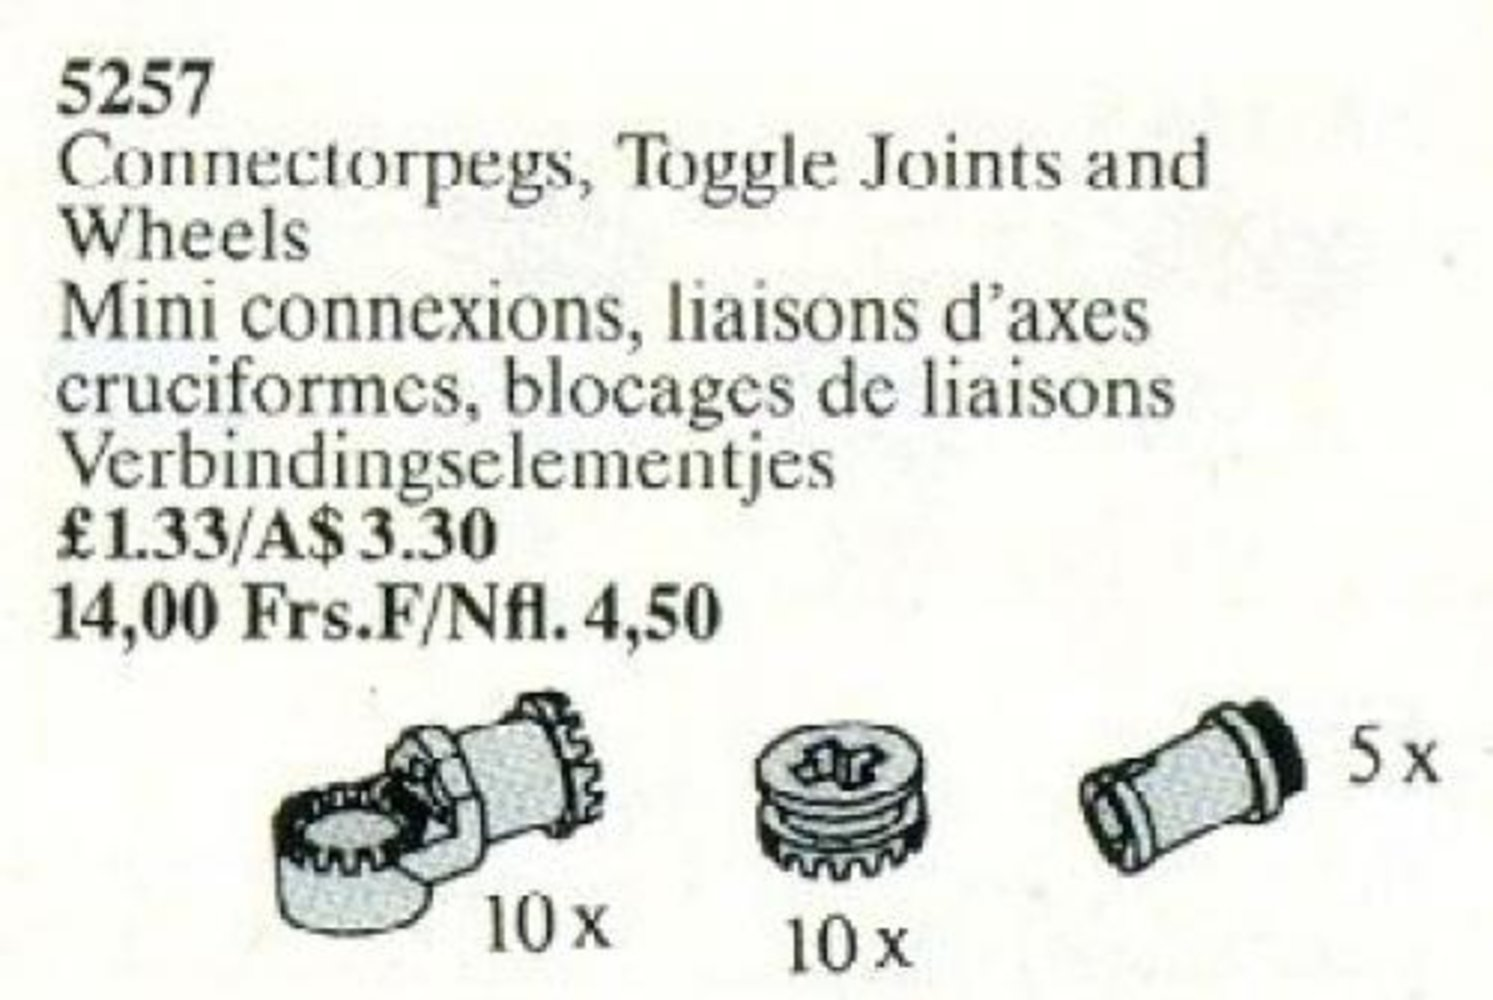 Connector Pegs, Toggle Joints, and Wheels